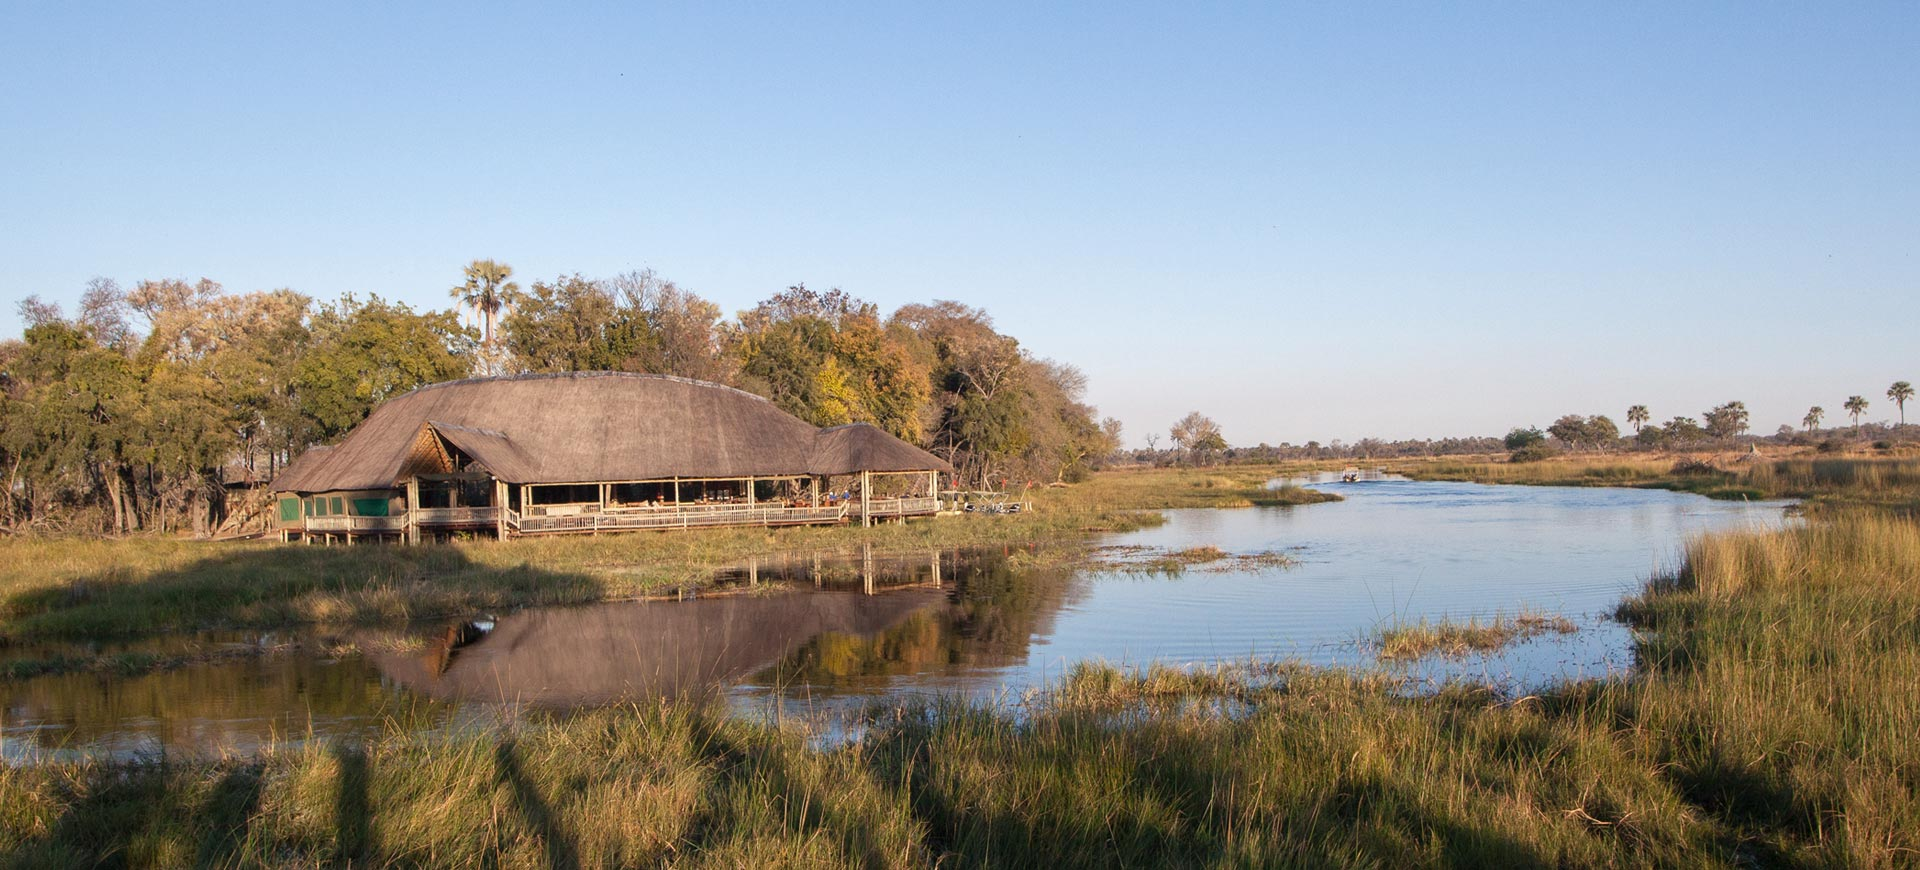 Moremi Crossing Lodge Okavango Delta